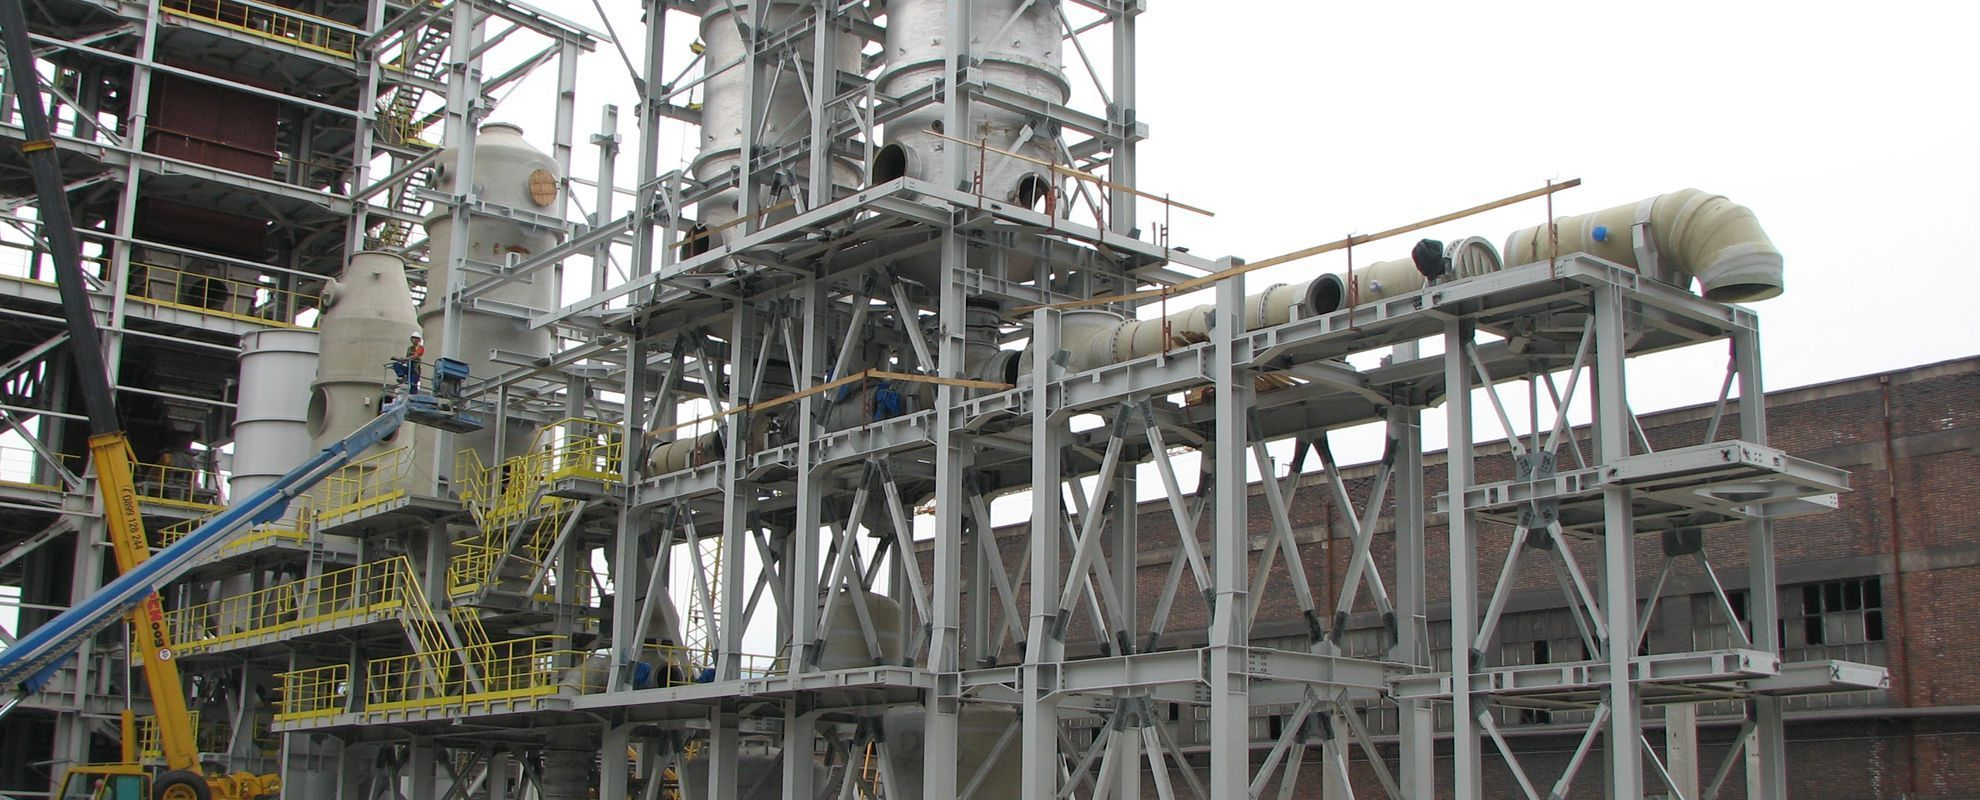 Production and assembly of steel structures for industry plants